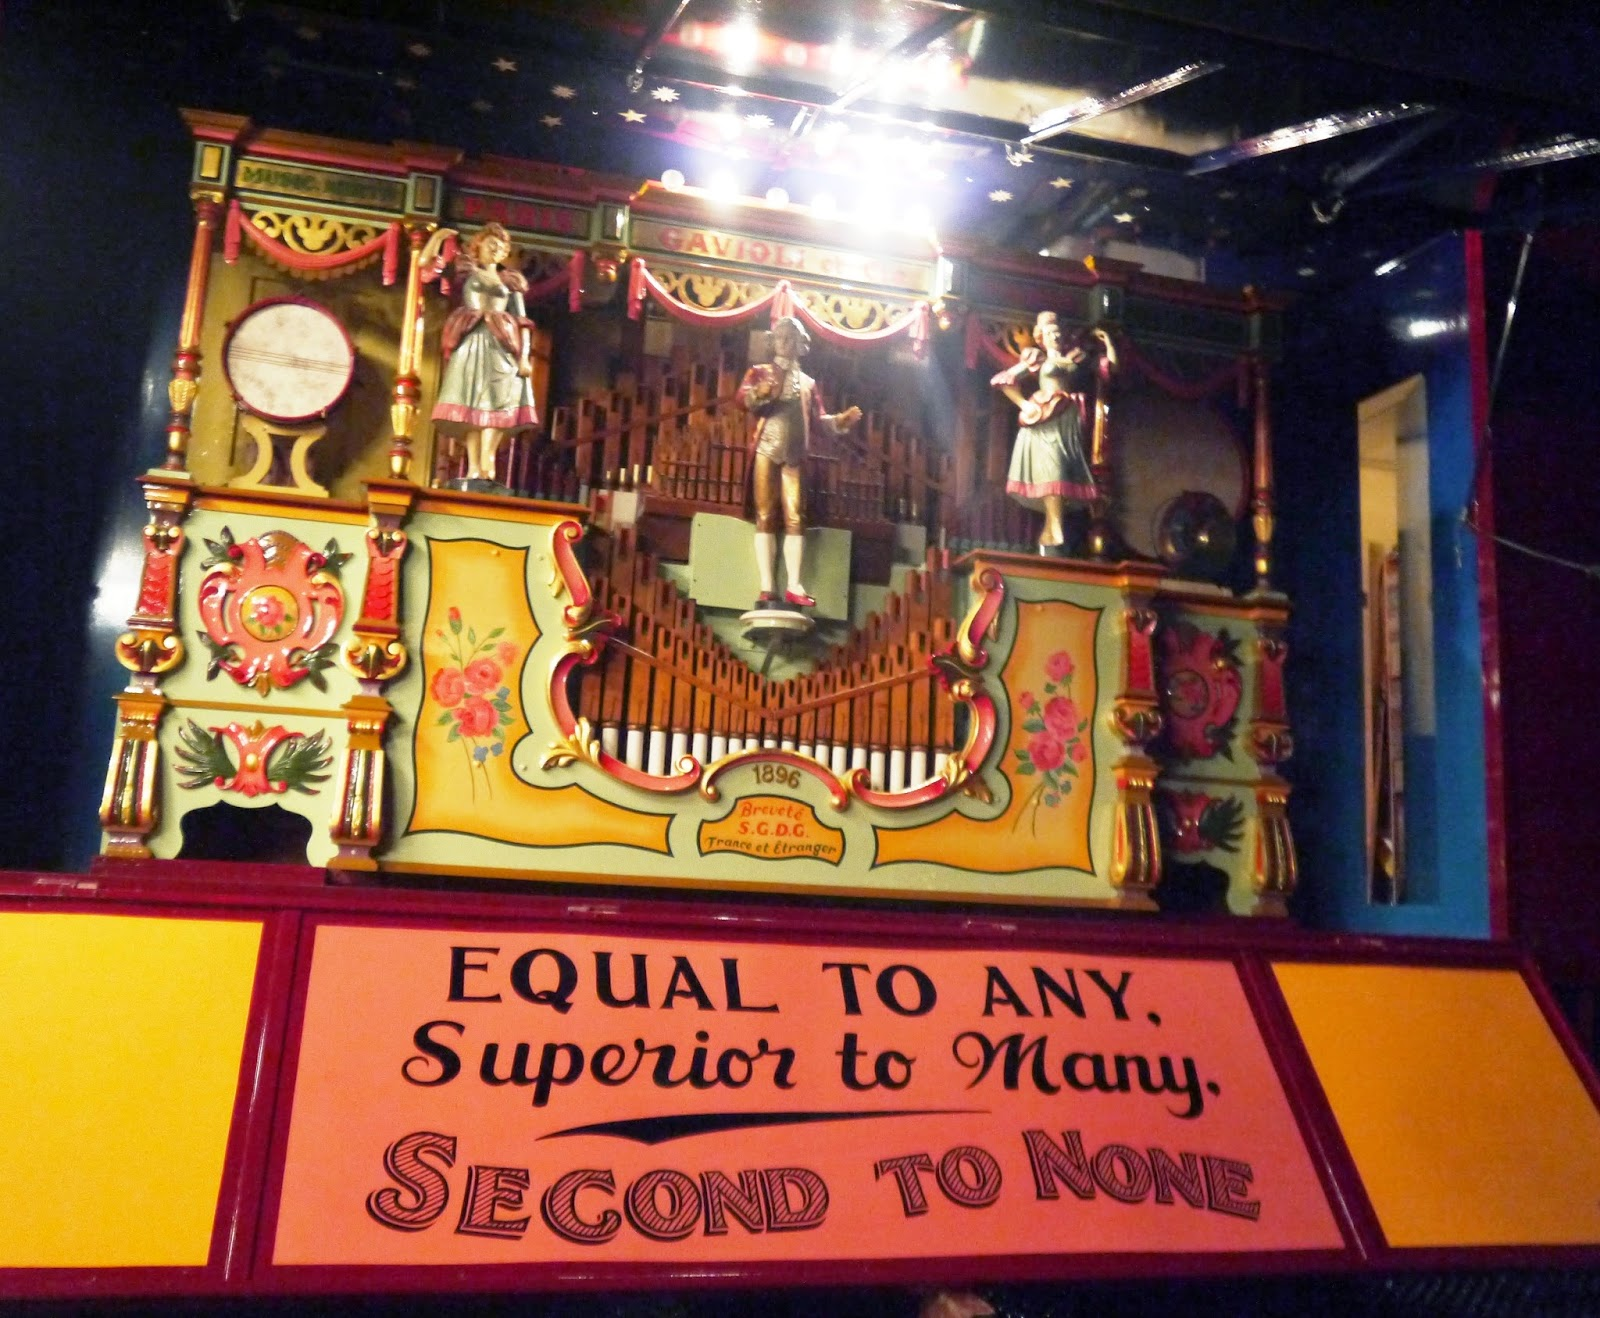 Carters Steam Fair Wedding - 1896 Fairground Organ